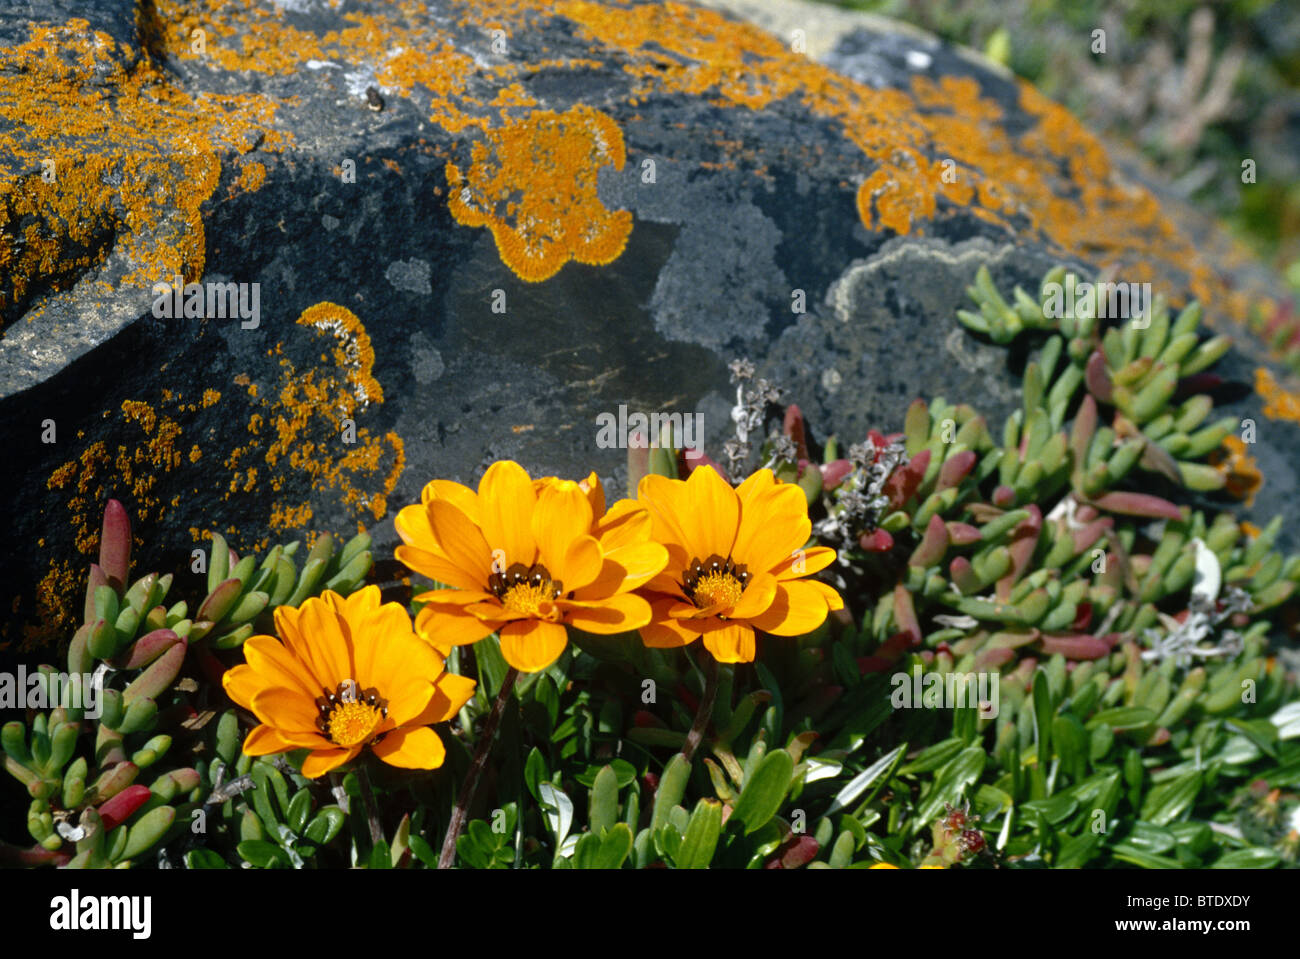 Bright Yellow Succulent Flowers Growing Next To A Lichen Covered